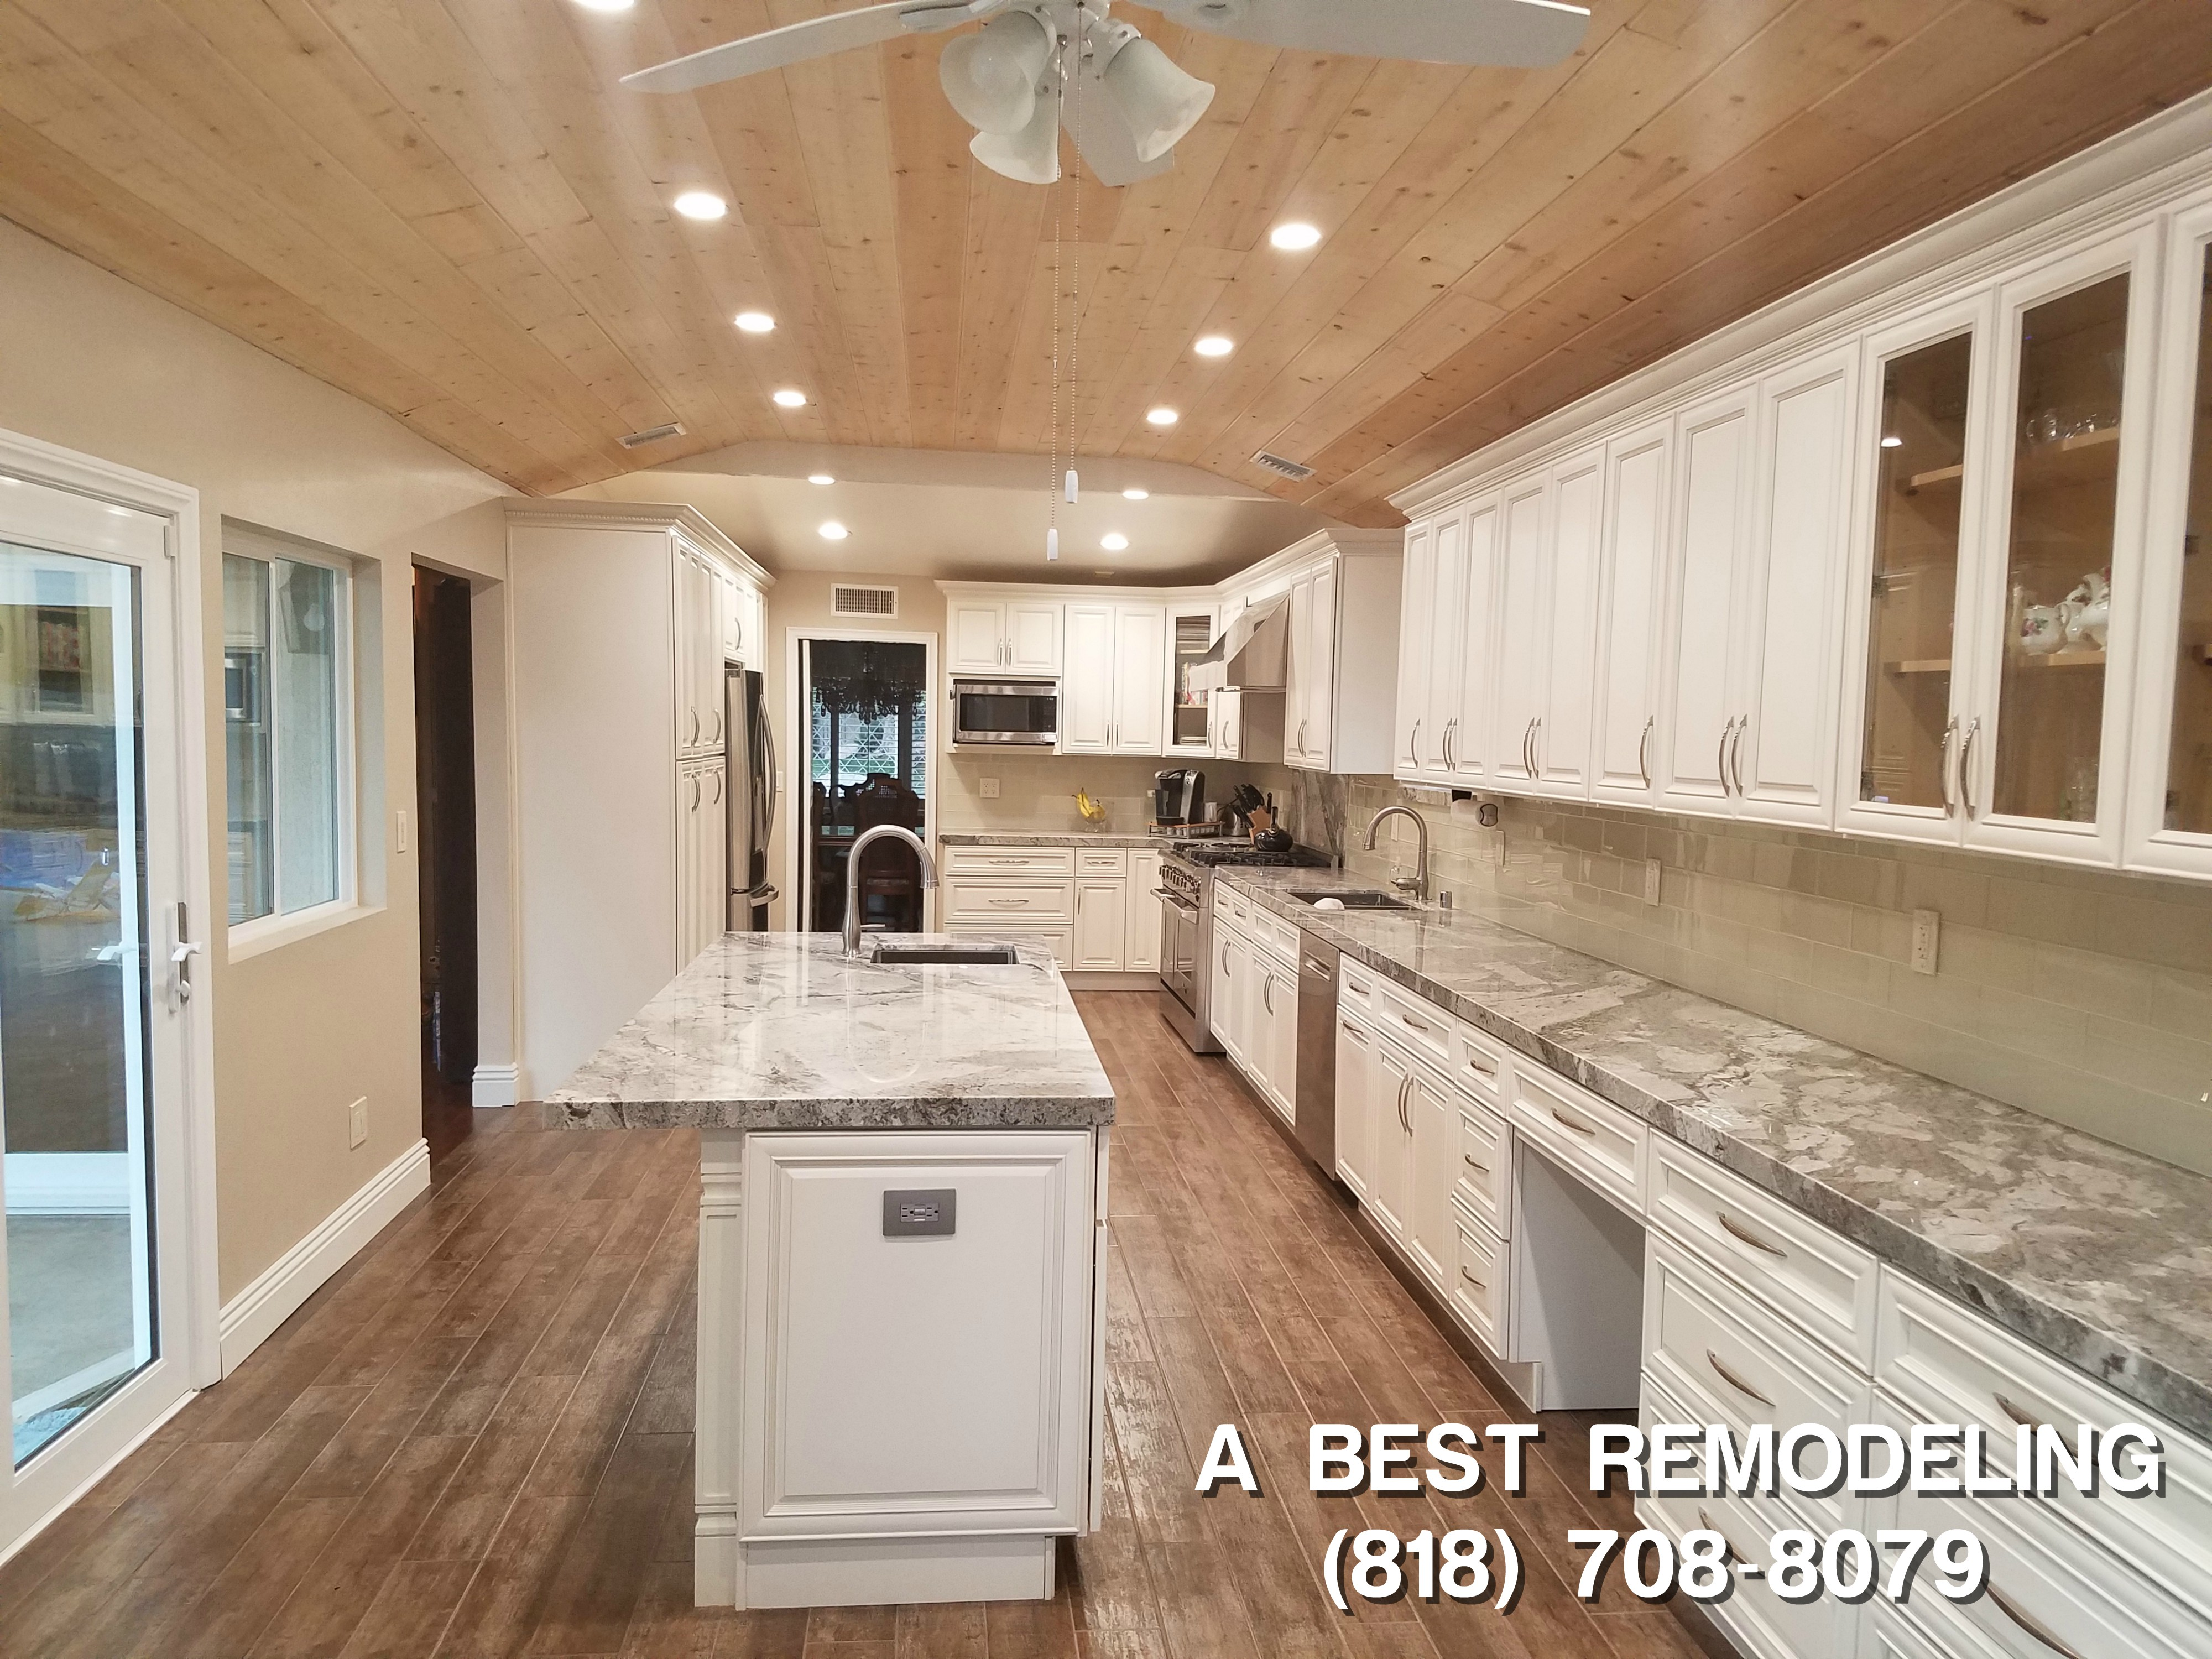 A Best Remodeling image 7